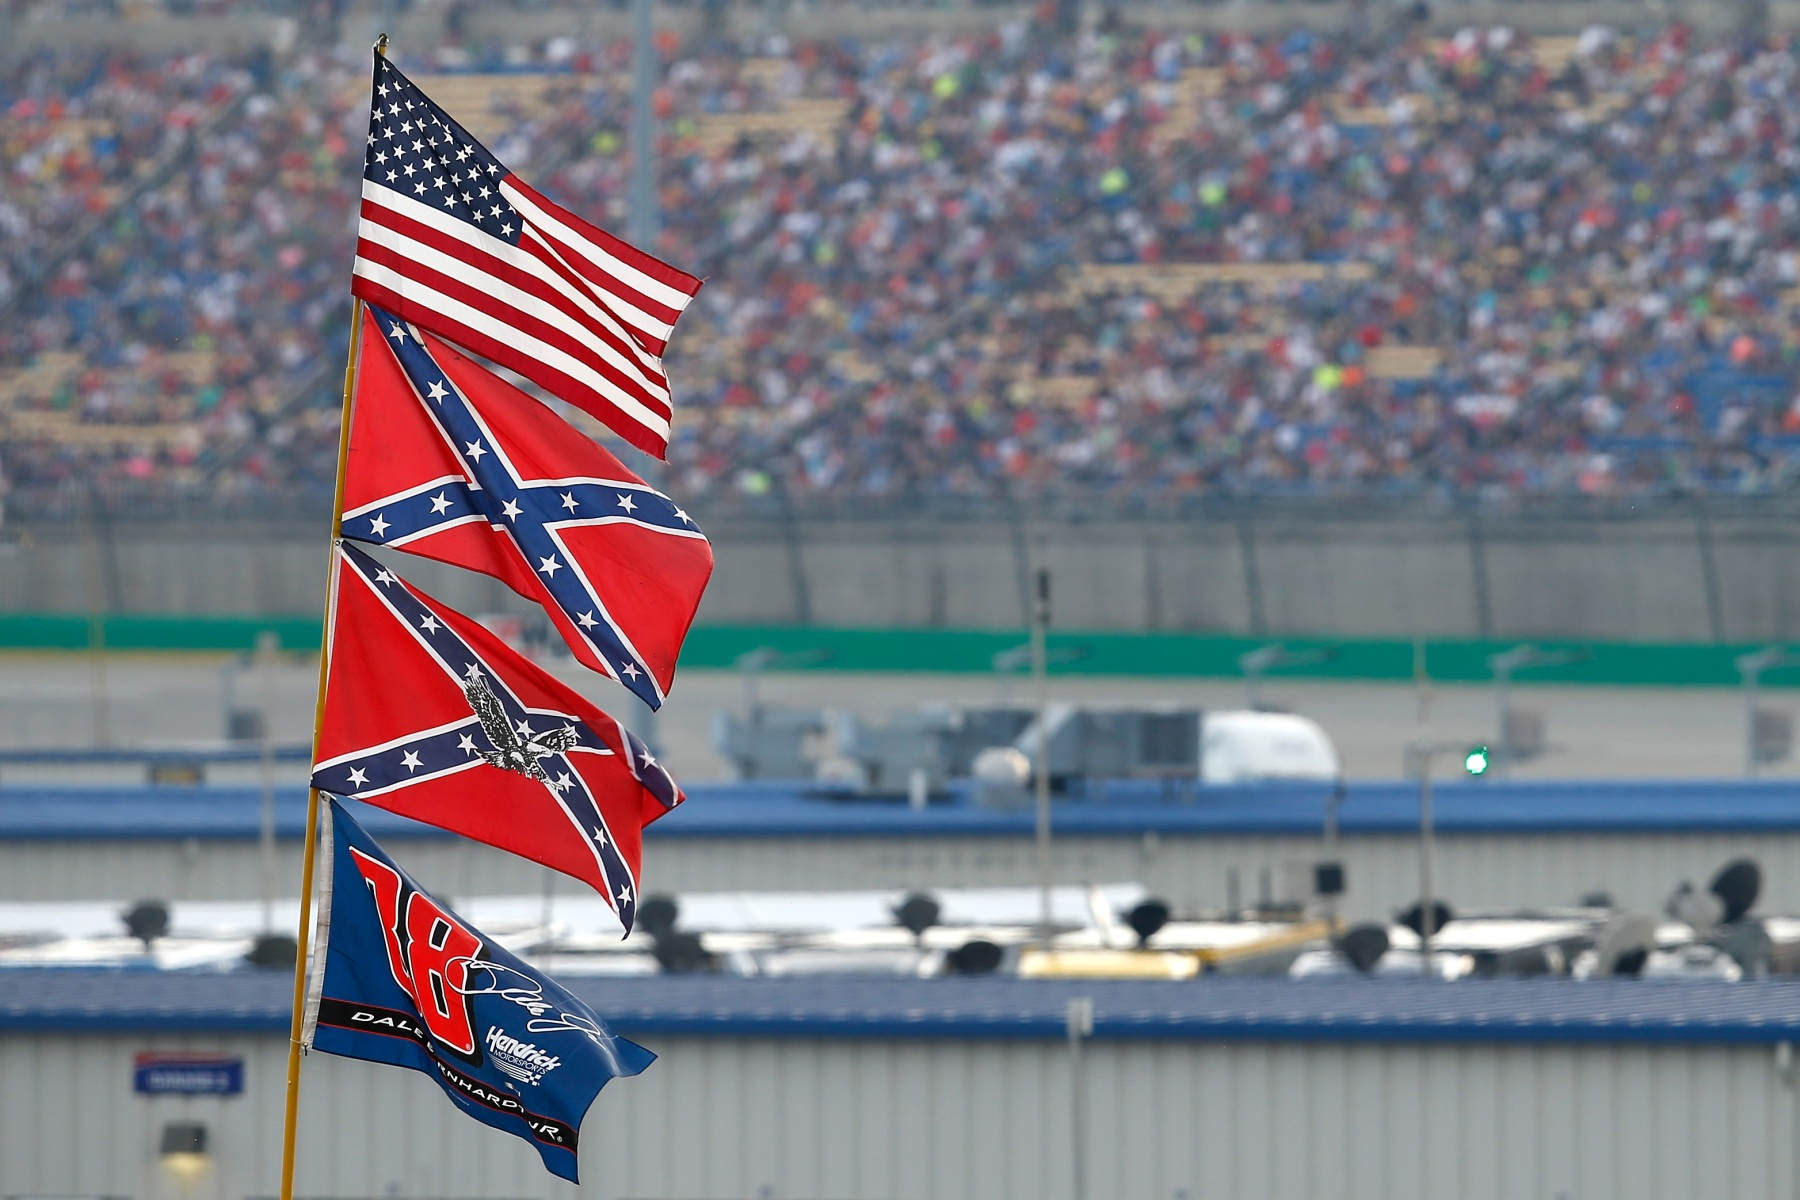 Confederate flags flying at a NASCAR stock car race